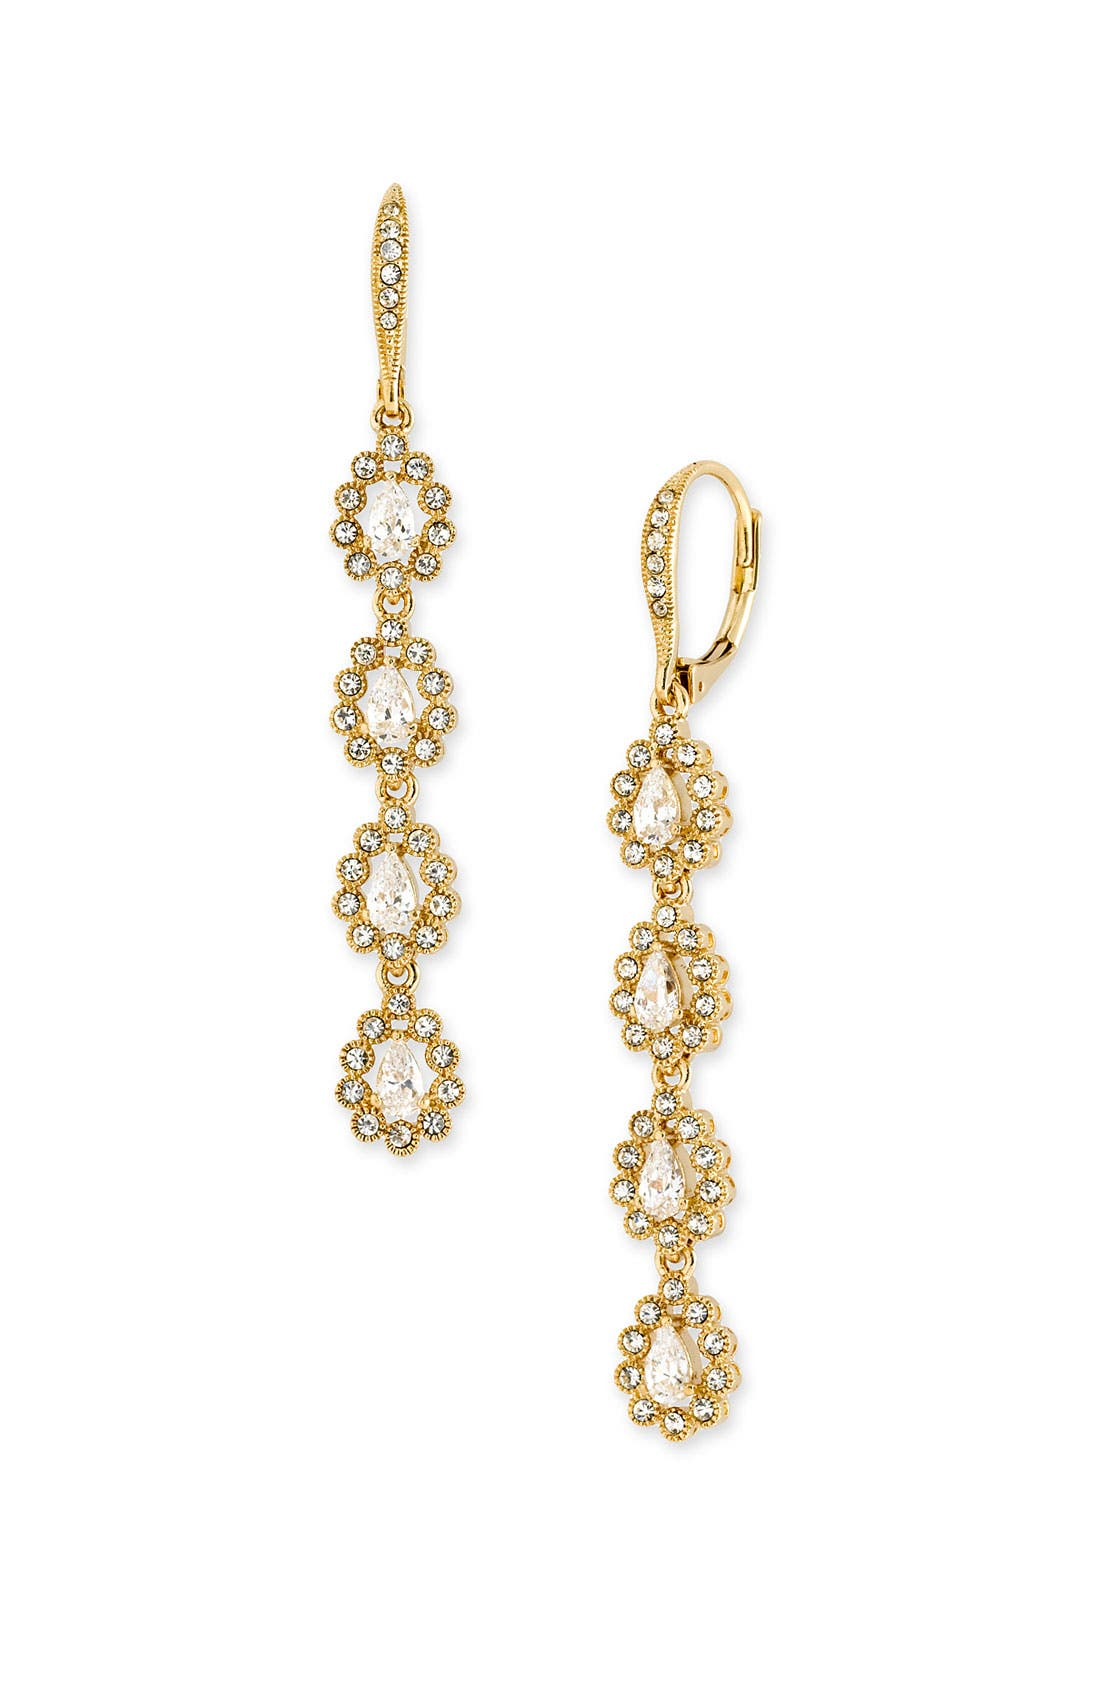 Main Image - Nadri Linear Teardrop Earrings